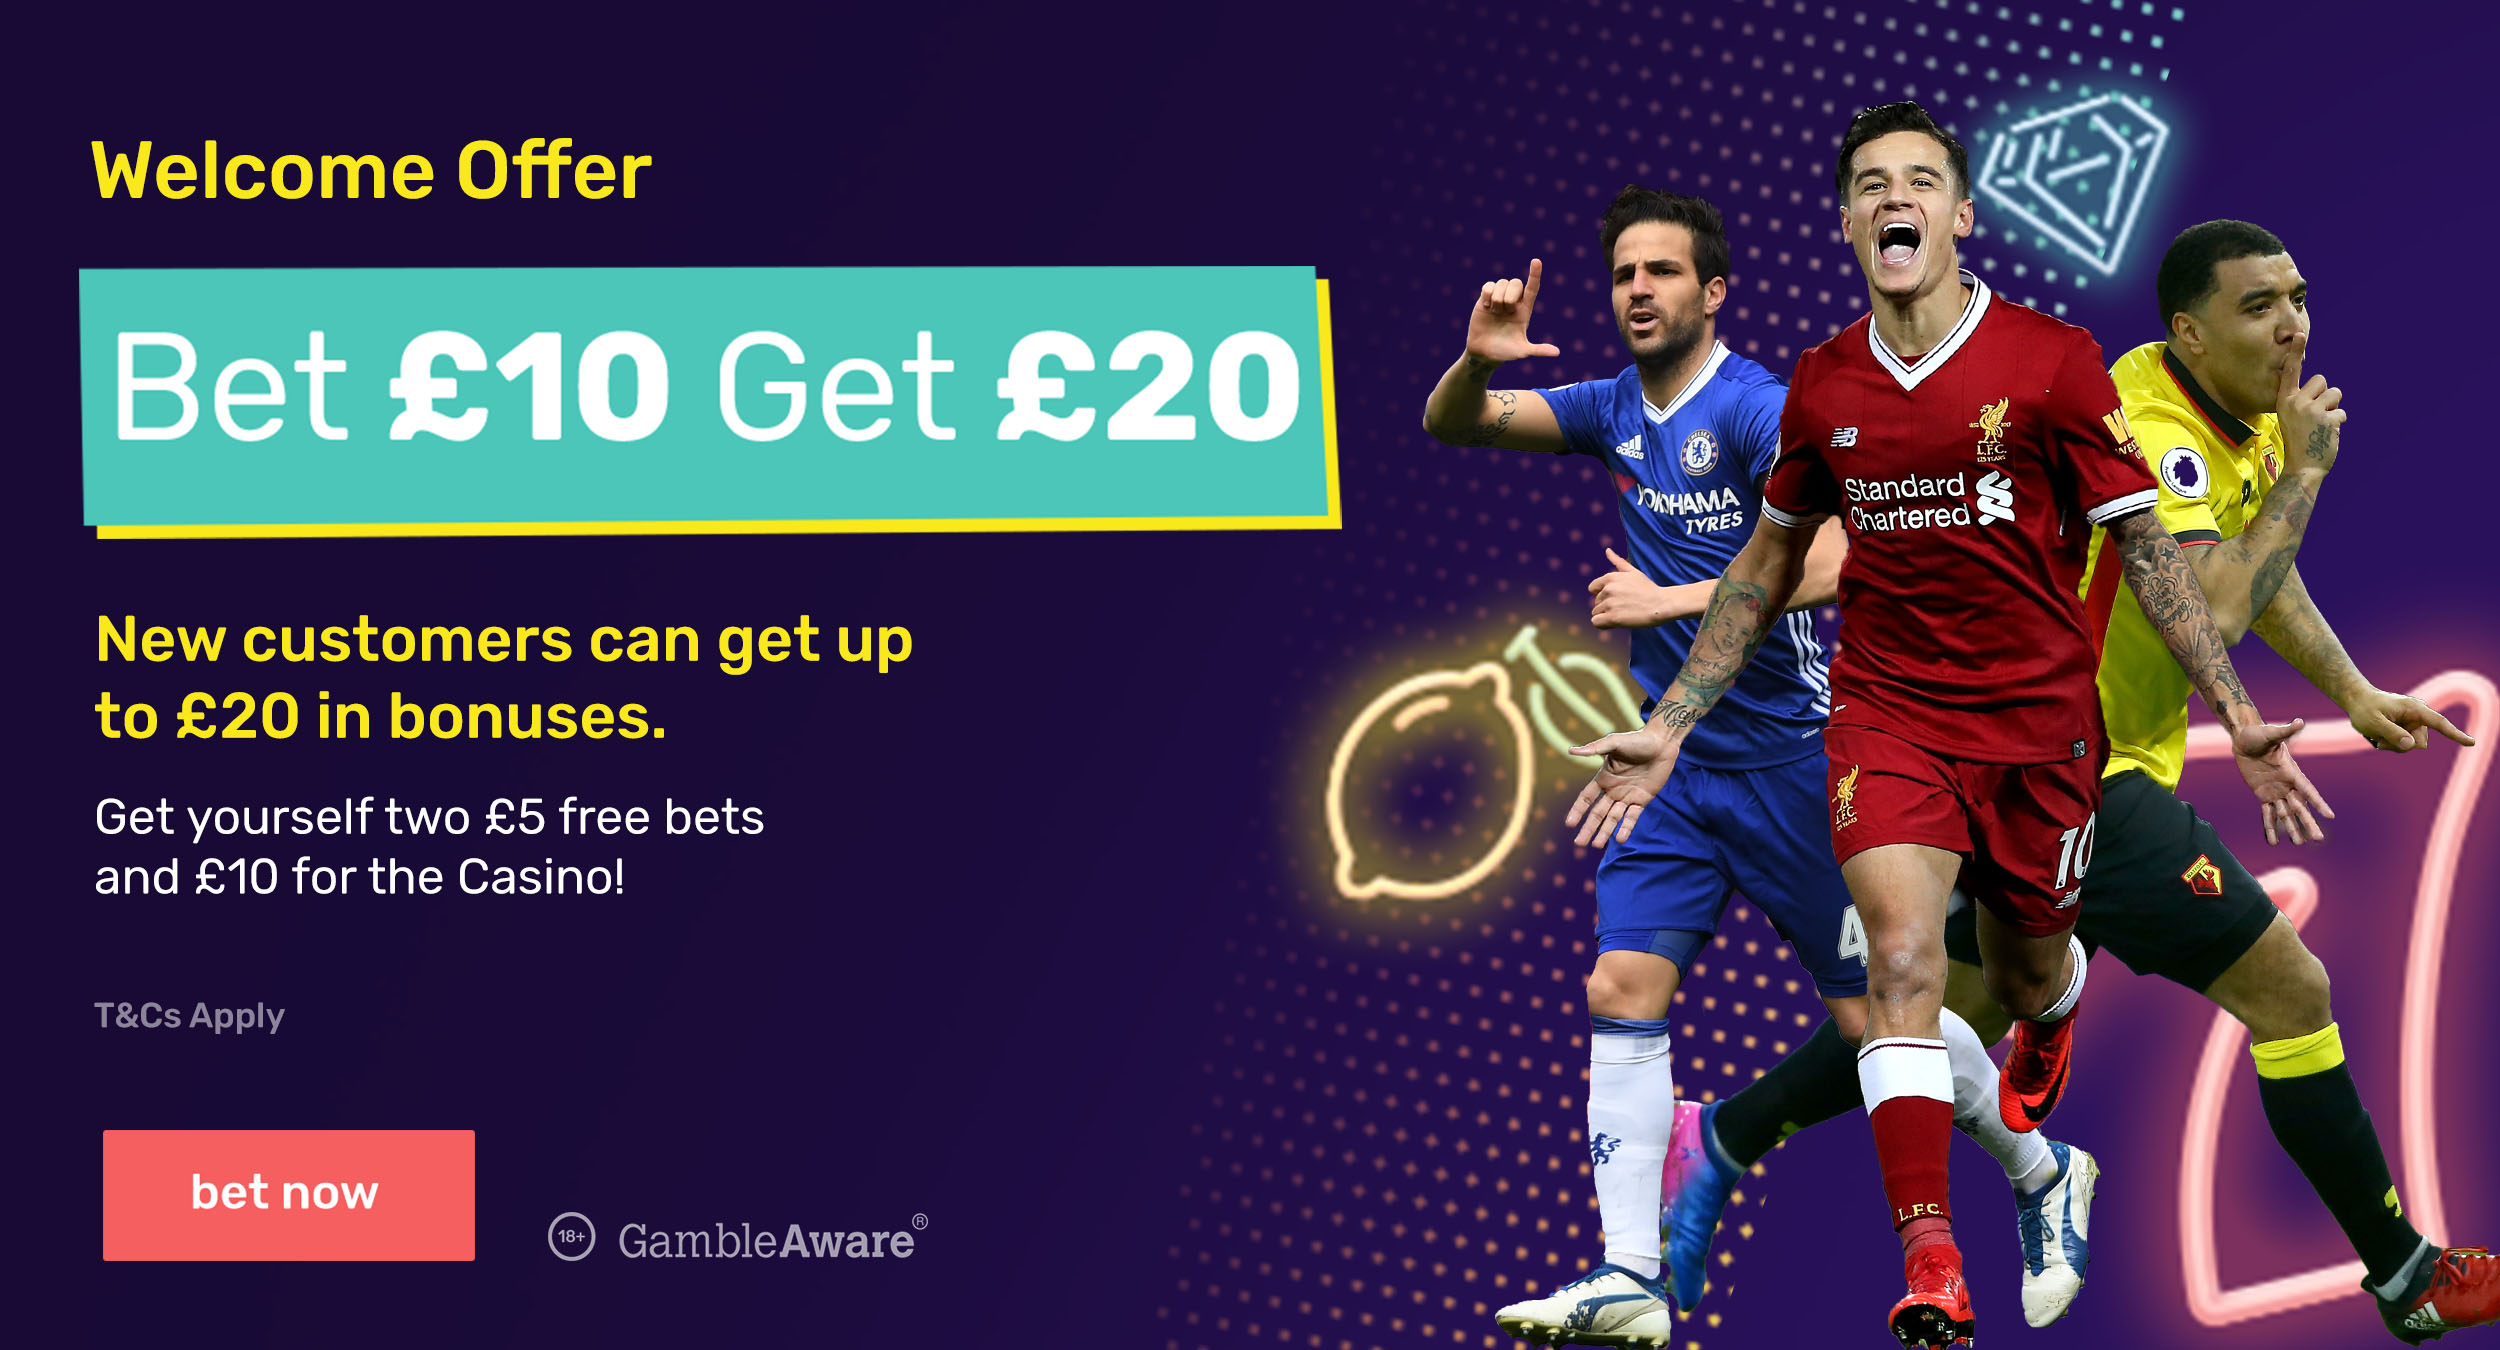 dabblebet bet 10 get 20 welcome offer